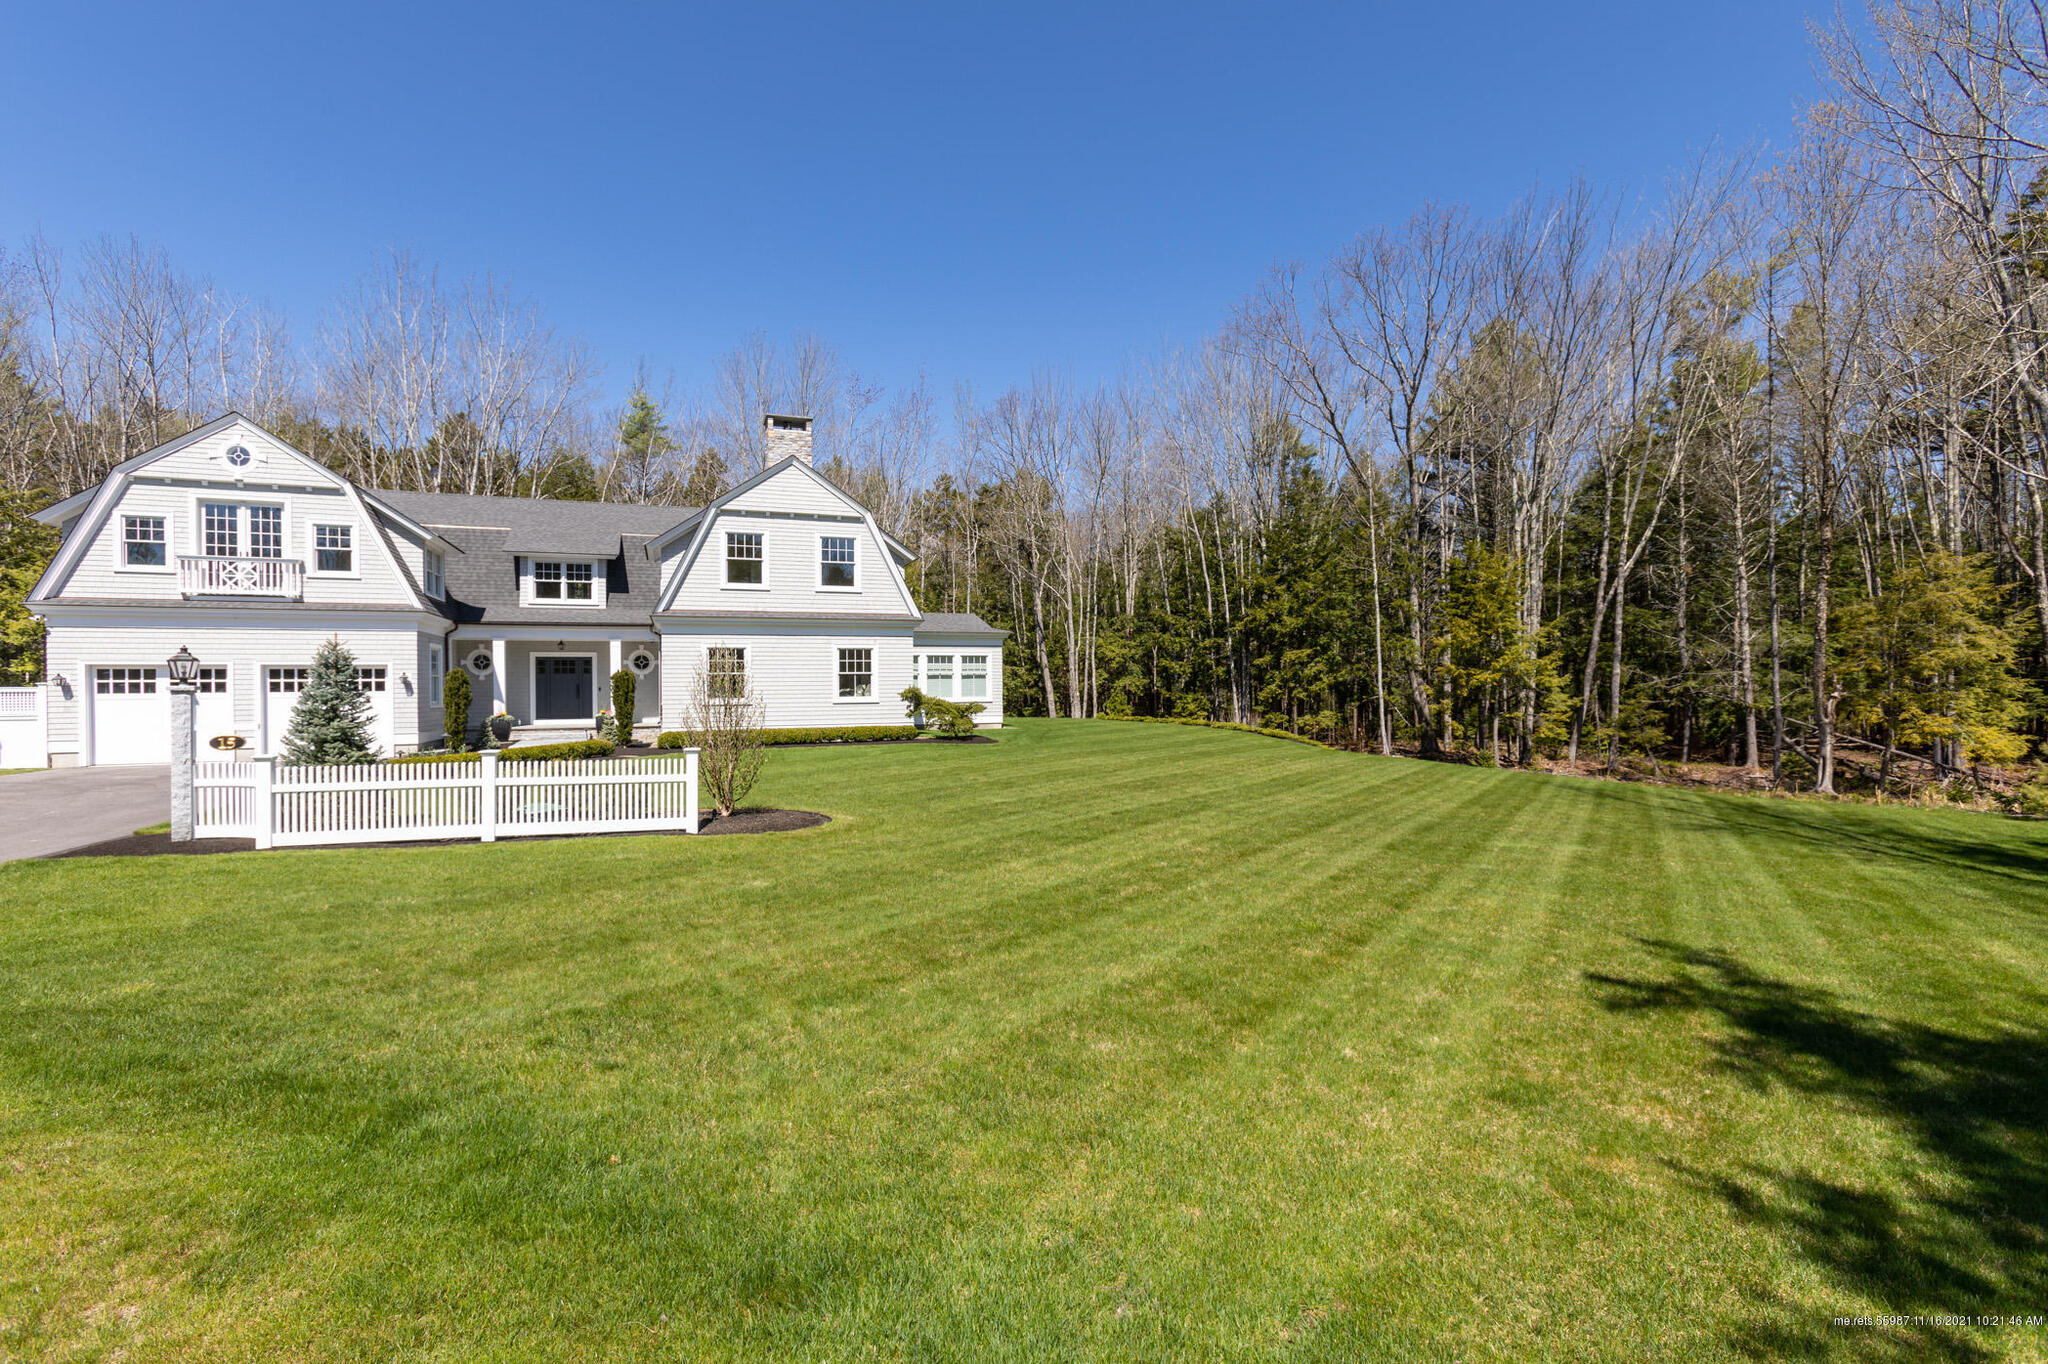 Photo of 15 Commodores Way Kennebunk ME 04043